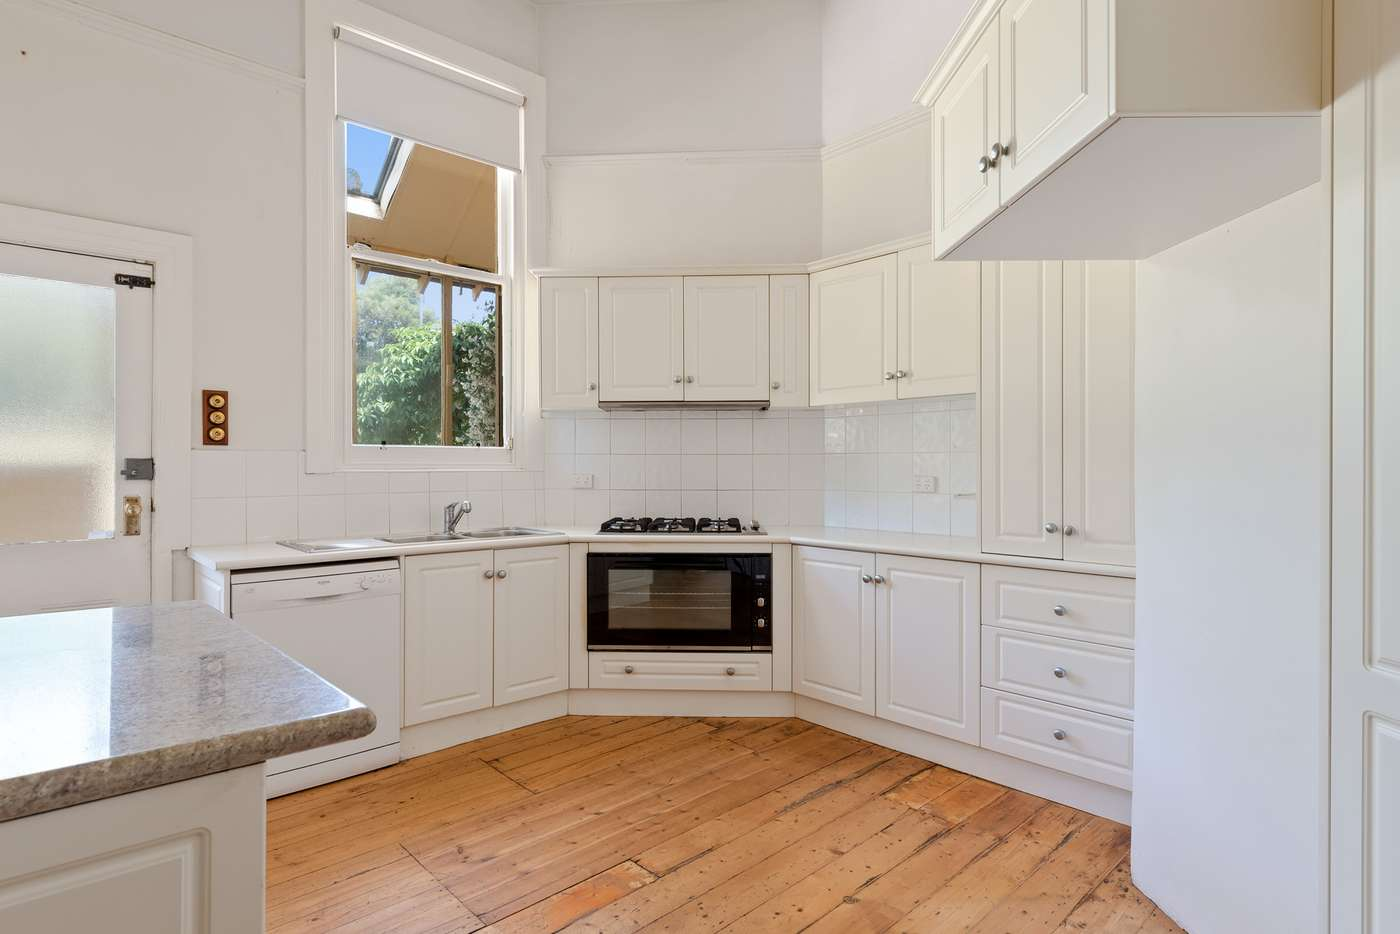 Sixth view of Homely house listing, 6 Logan Street, Canterbury VIC 3126